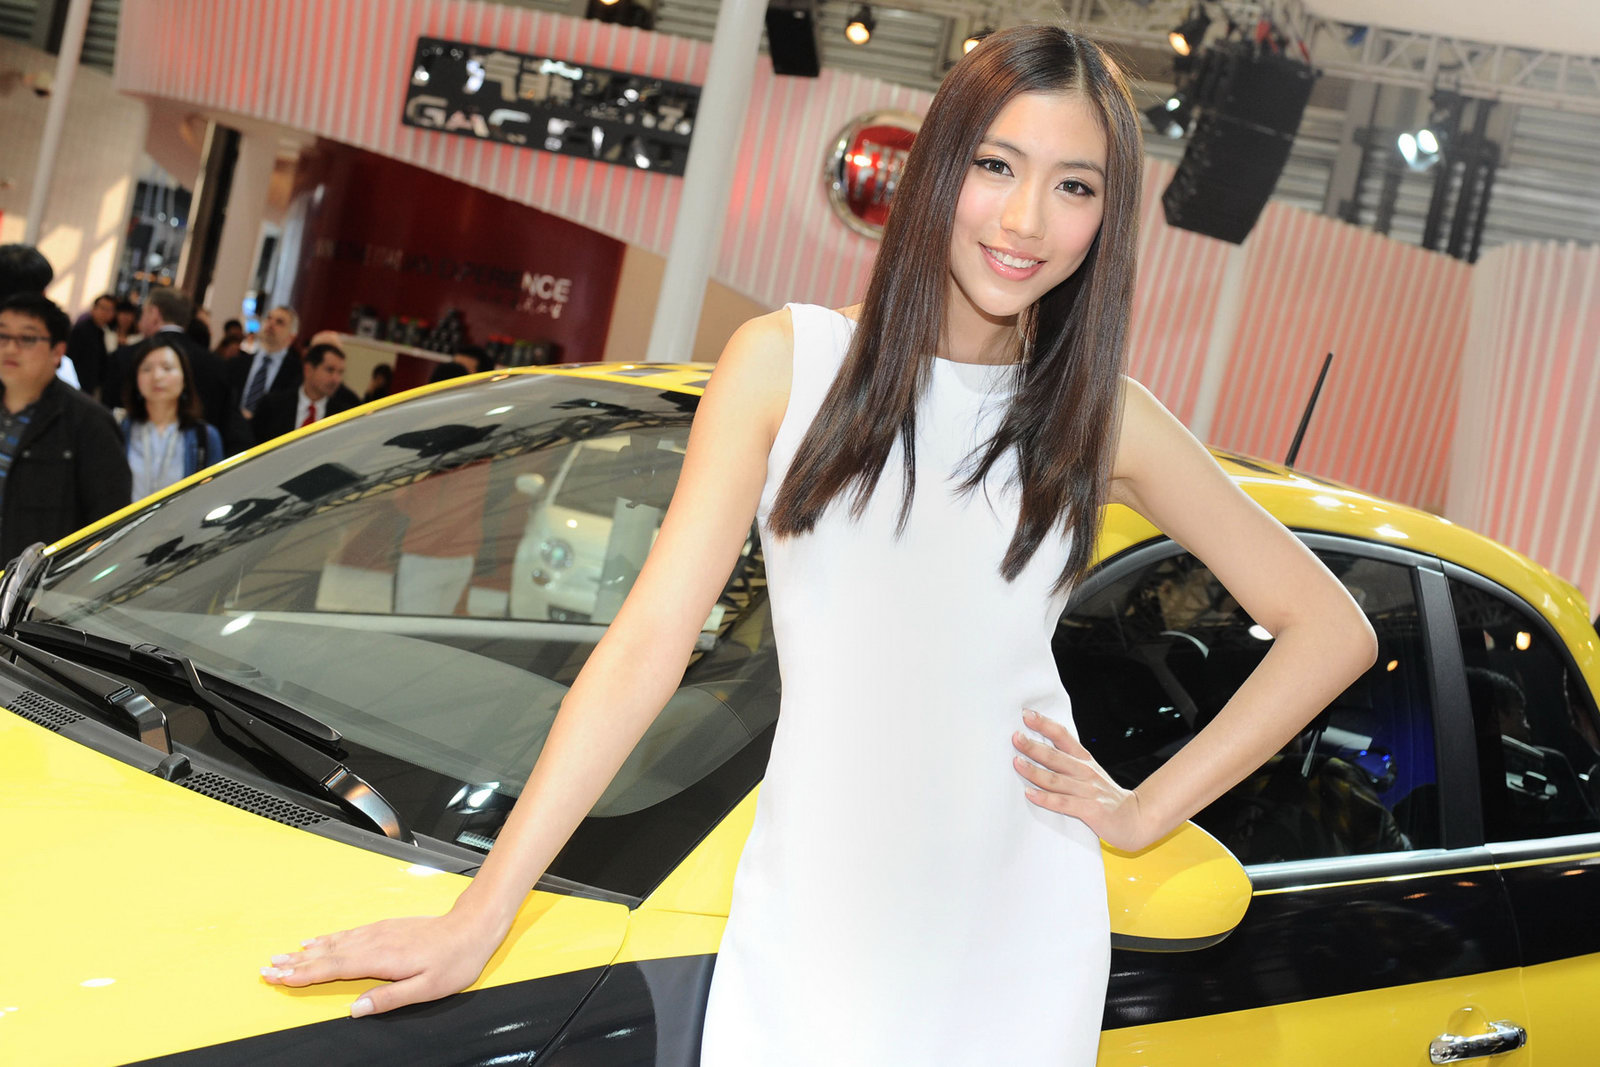 Japan car show model girls, chinnese girl getting fucked gif